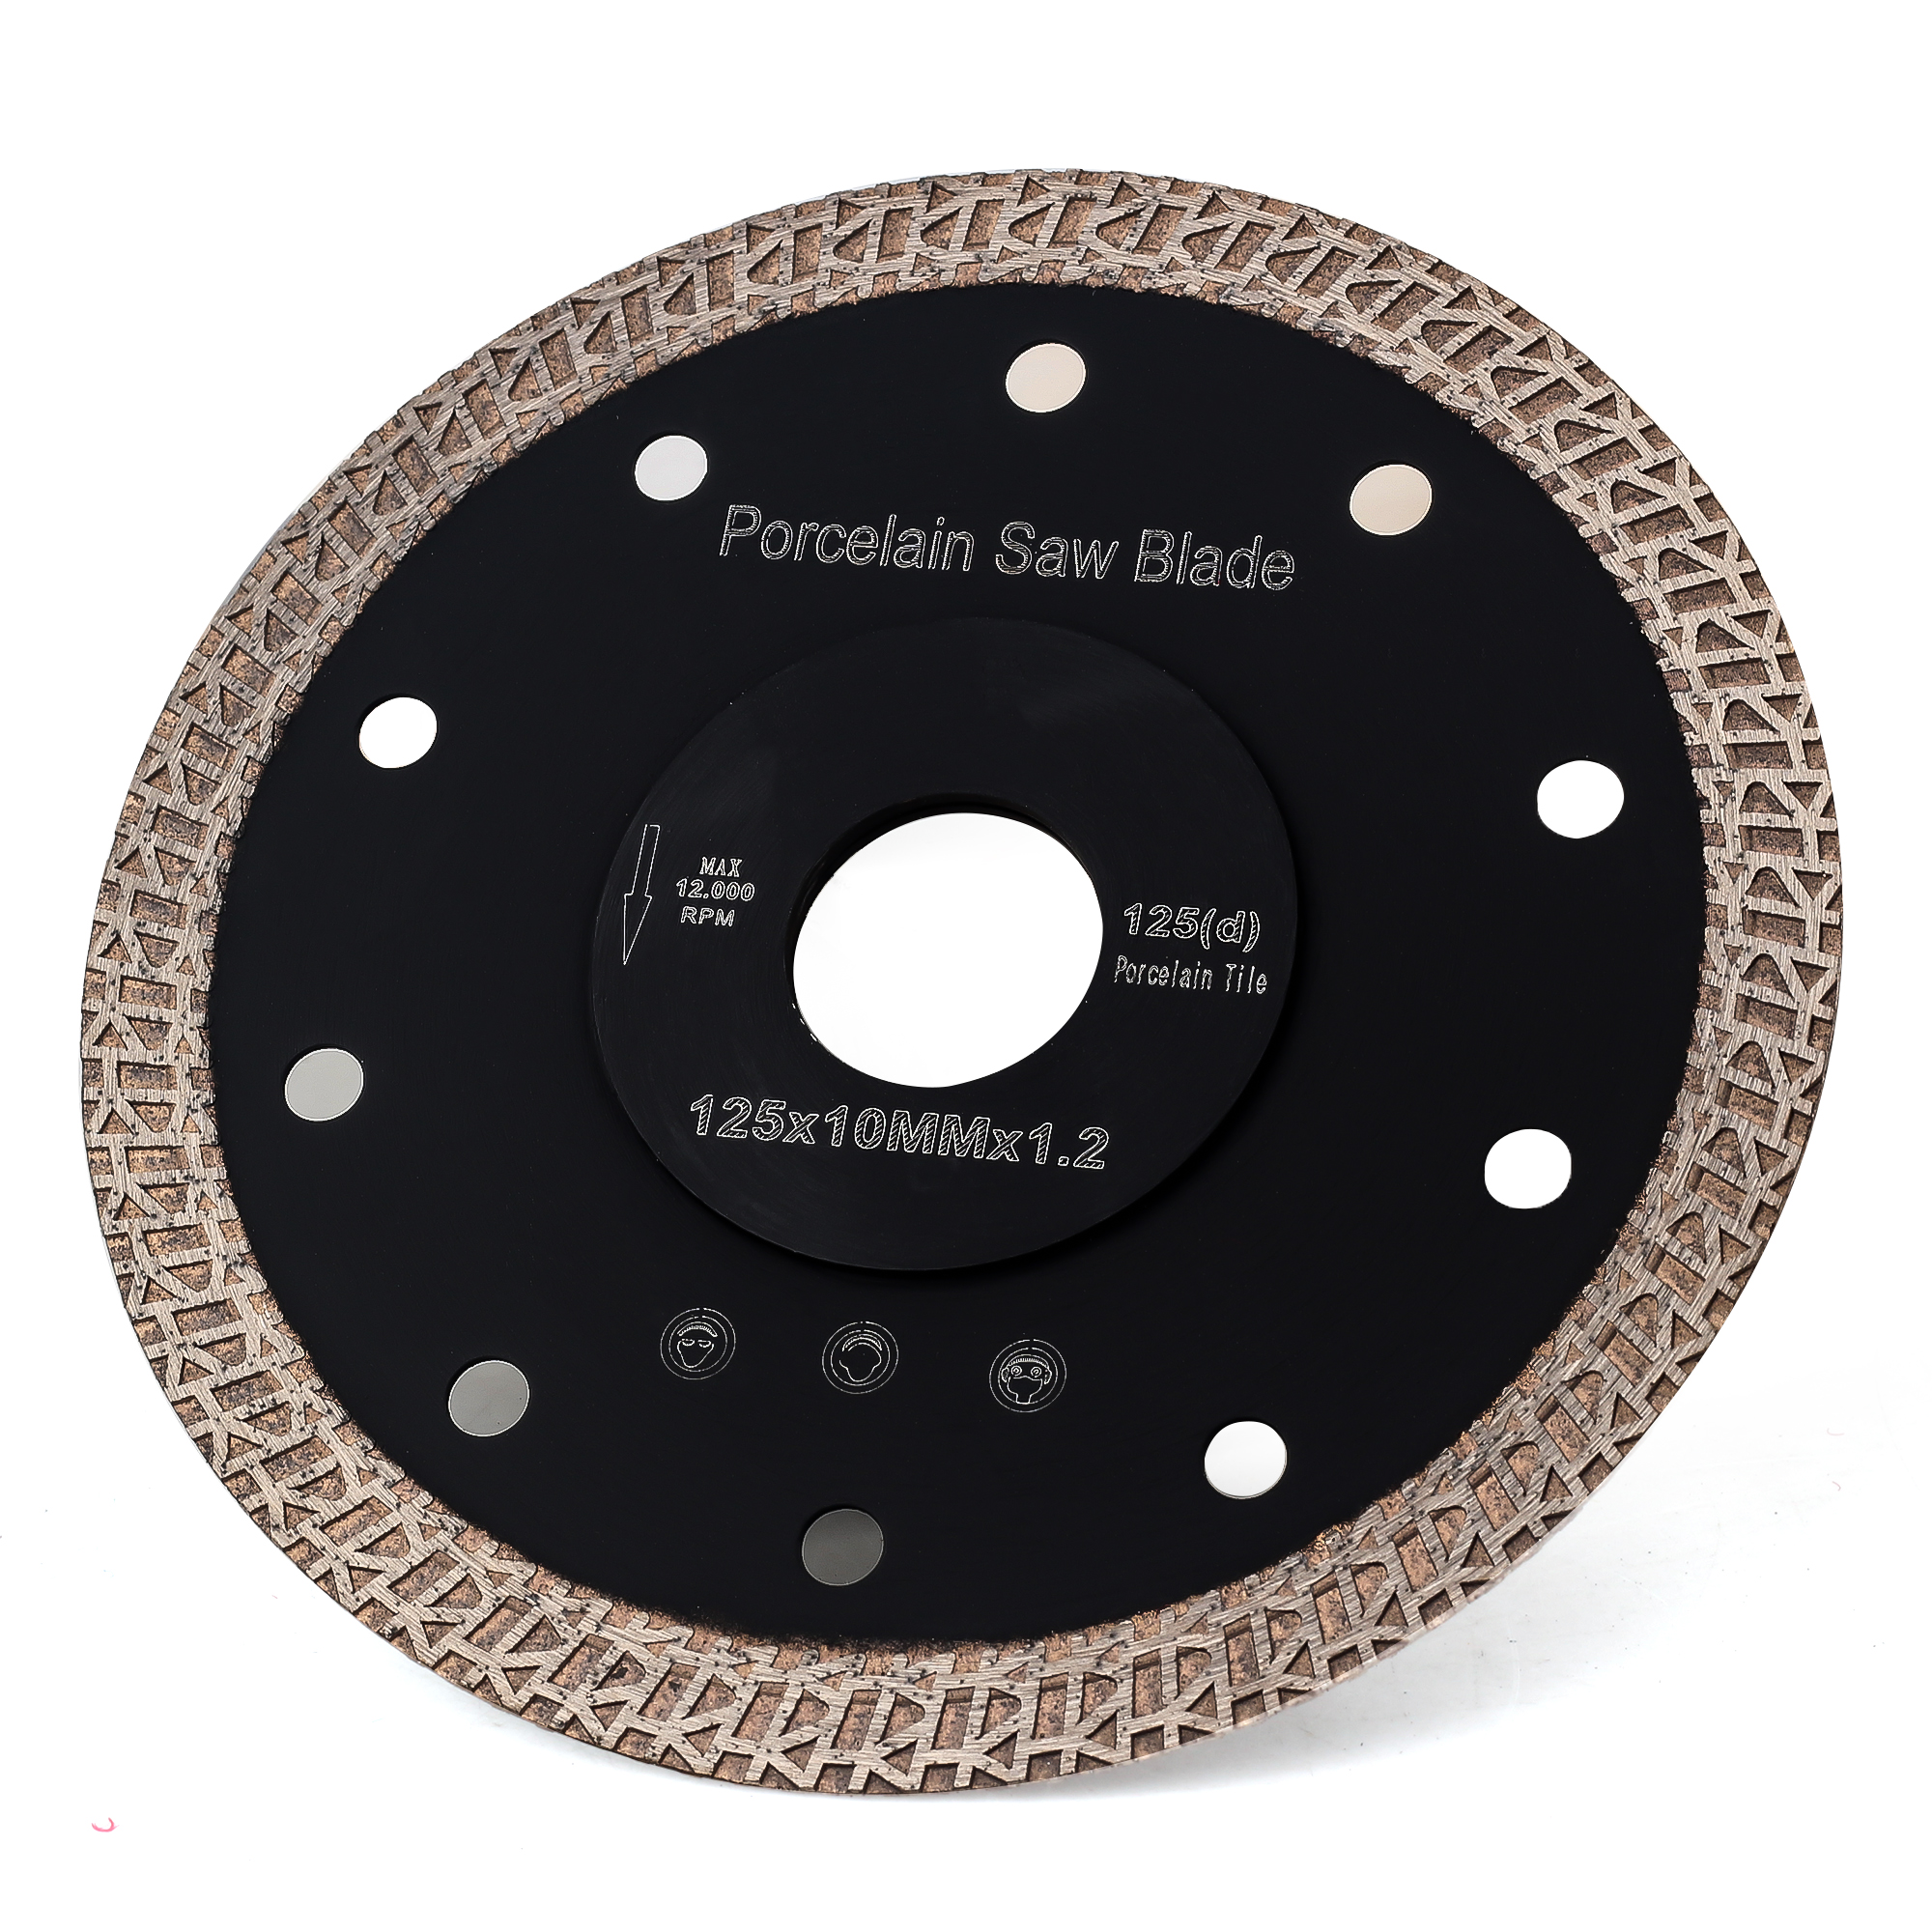 Free Shipping DC-SRSB03 5 Inch Diamond Saw Blade 125mm For Porcelain And Ceramic Tile Cutting